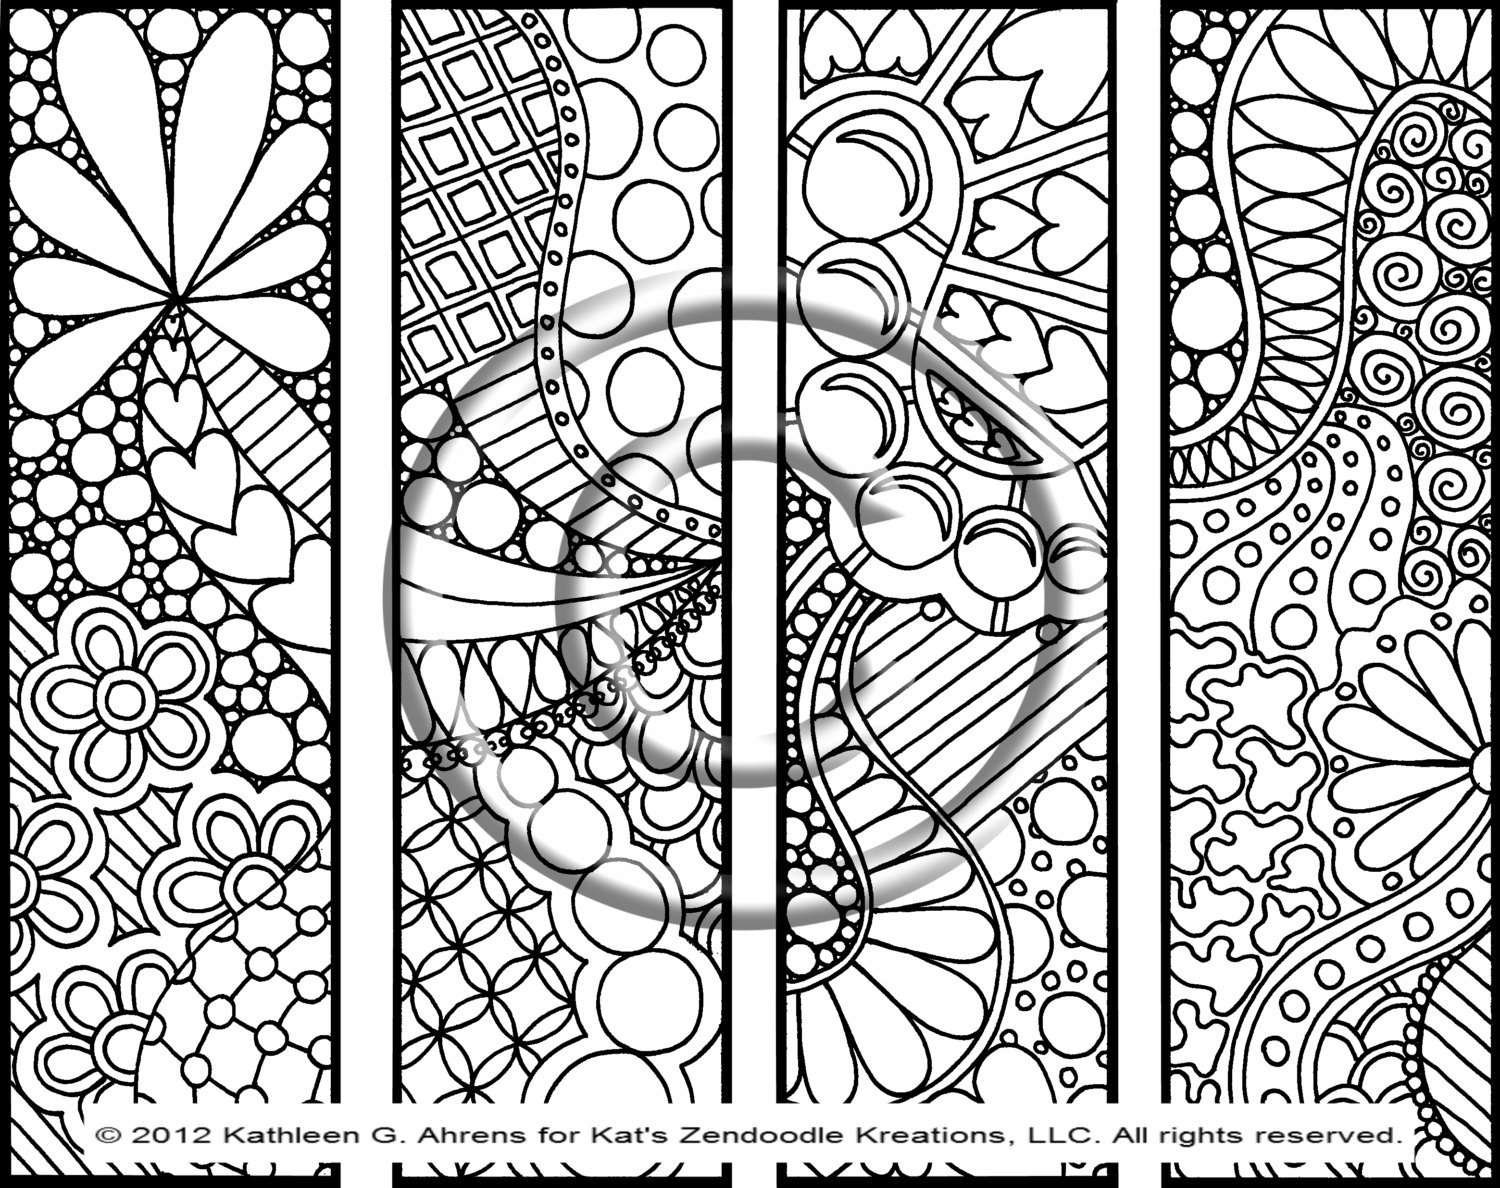 Abstract Heart Coloring Pages, Abstract Heart Patterns coloring page ...